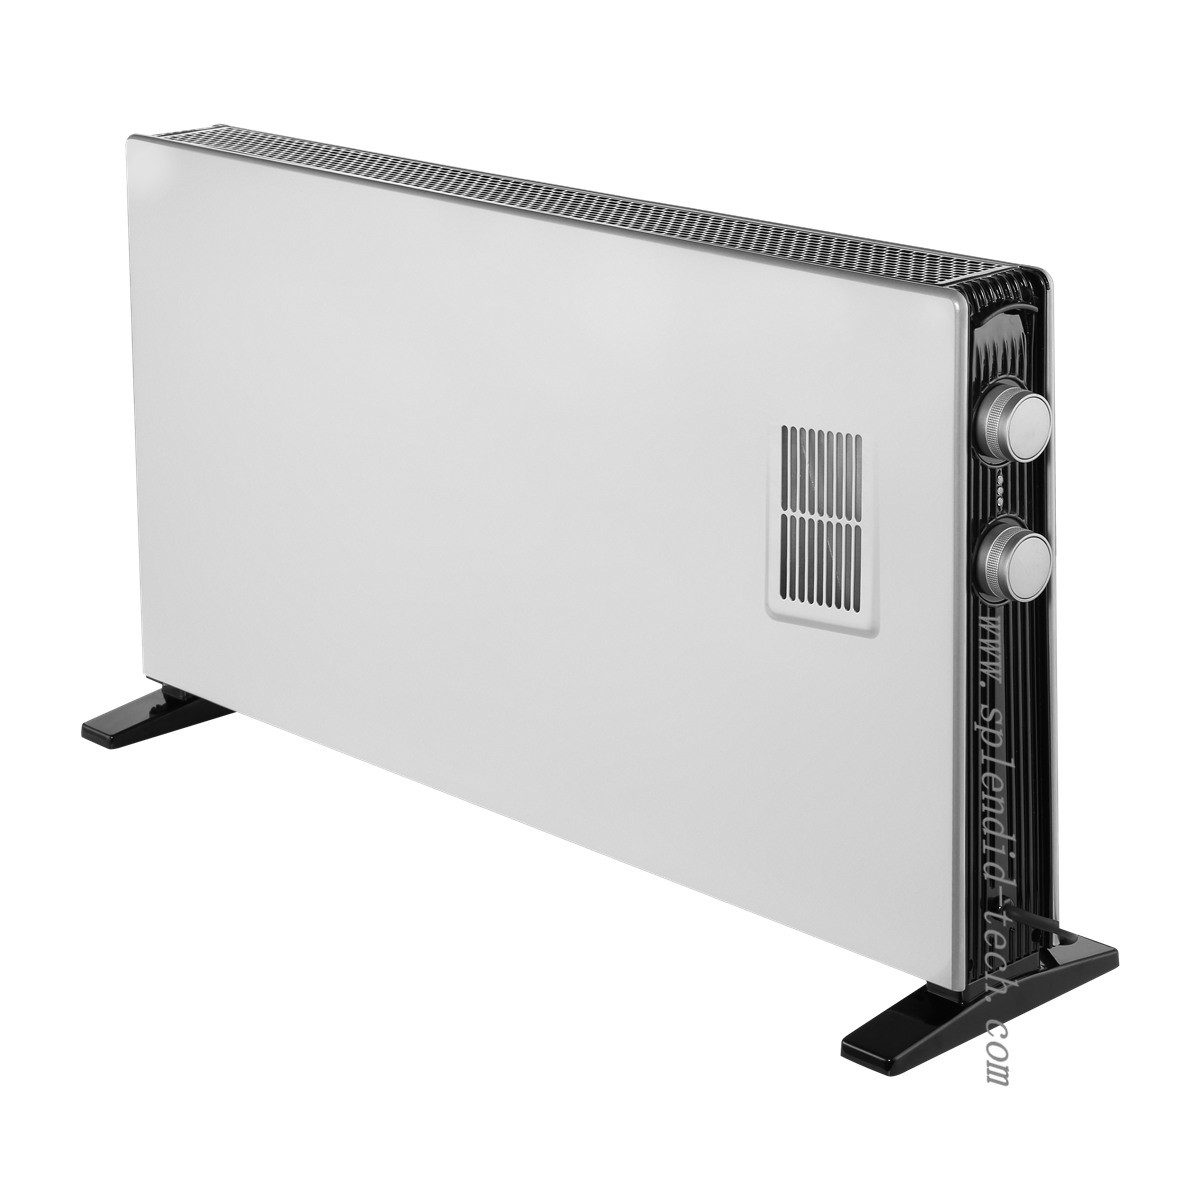 Design Convector Radiator.China Portable Mountable Convector Heater Slim Designed With